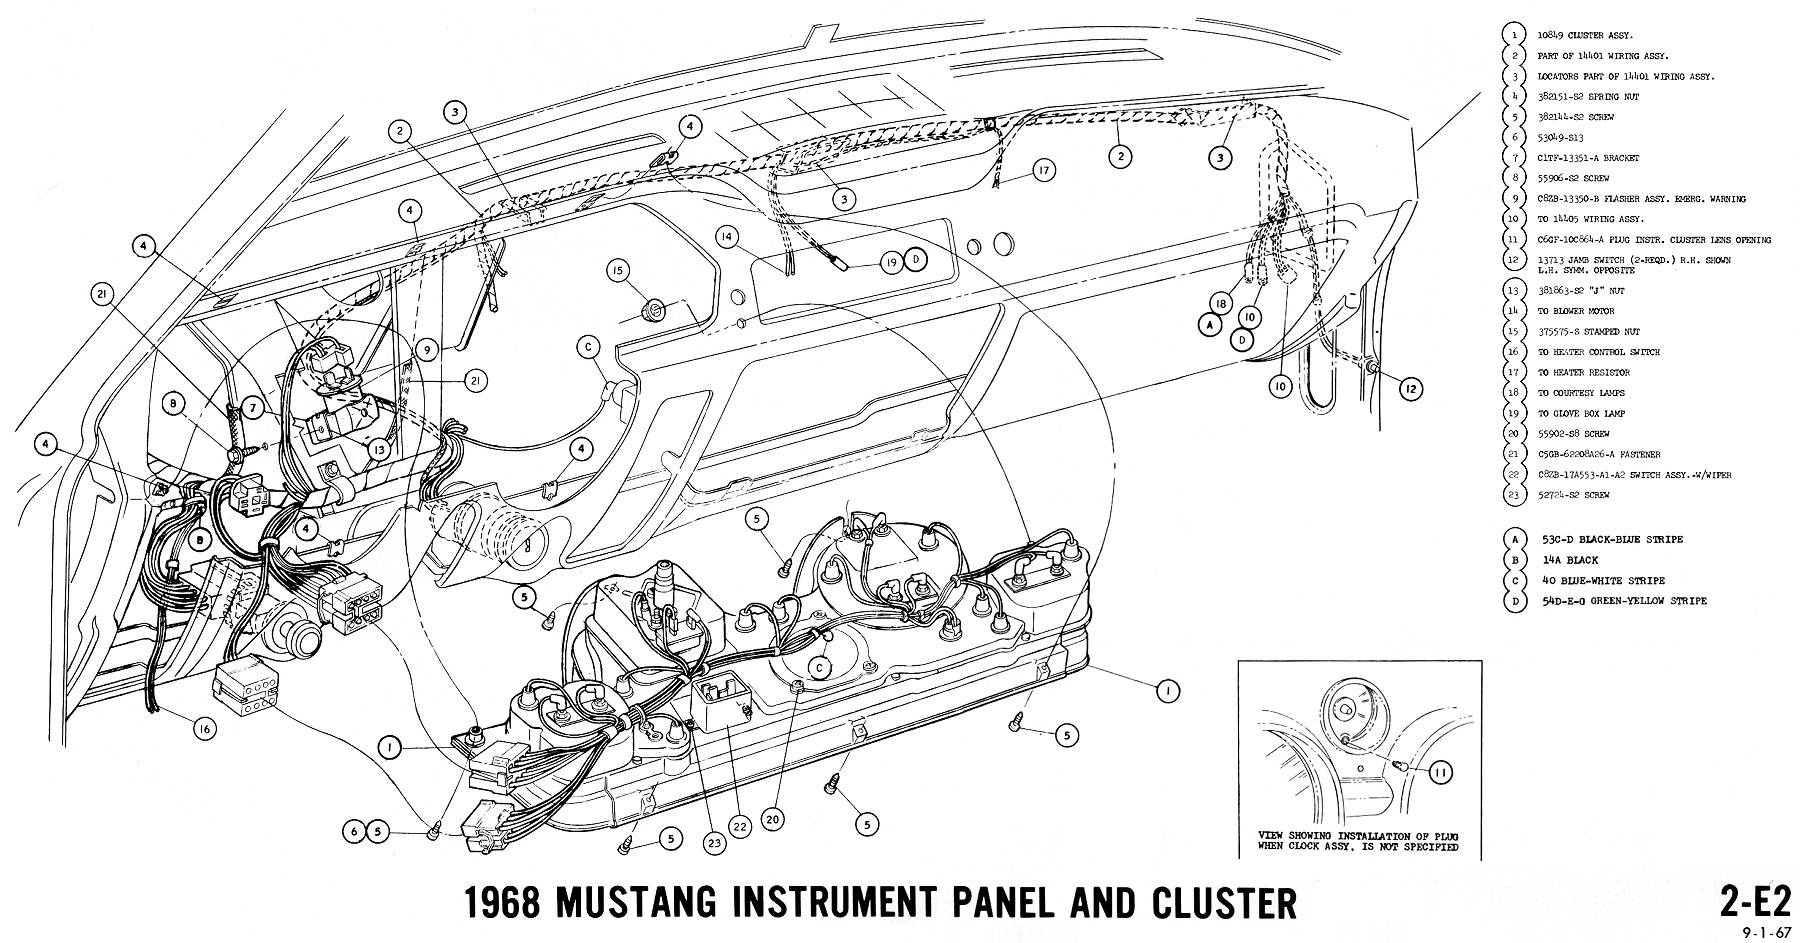 1968 Mustang Fuse Panel Diagram Archive Of Automotive Wiring 68 Dash Ii Cluster Just Data Rh Ag Skiphire Co Uk